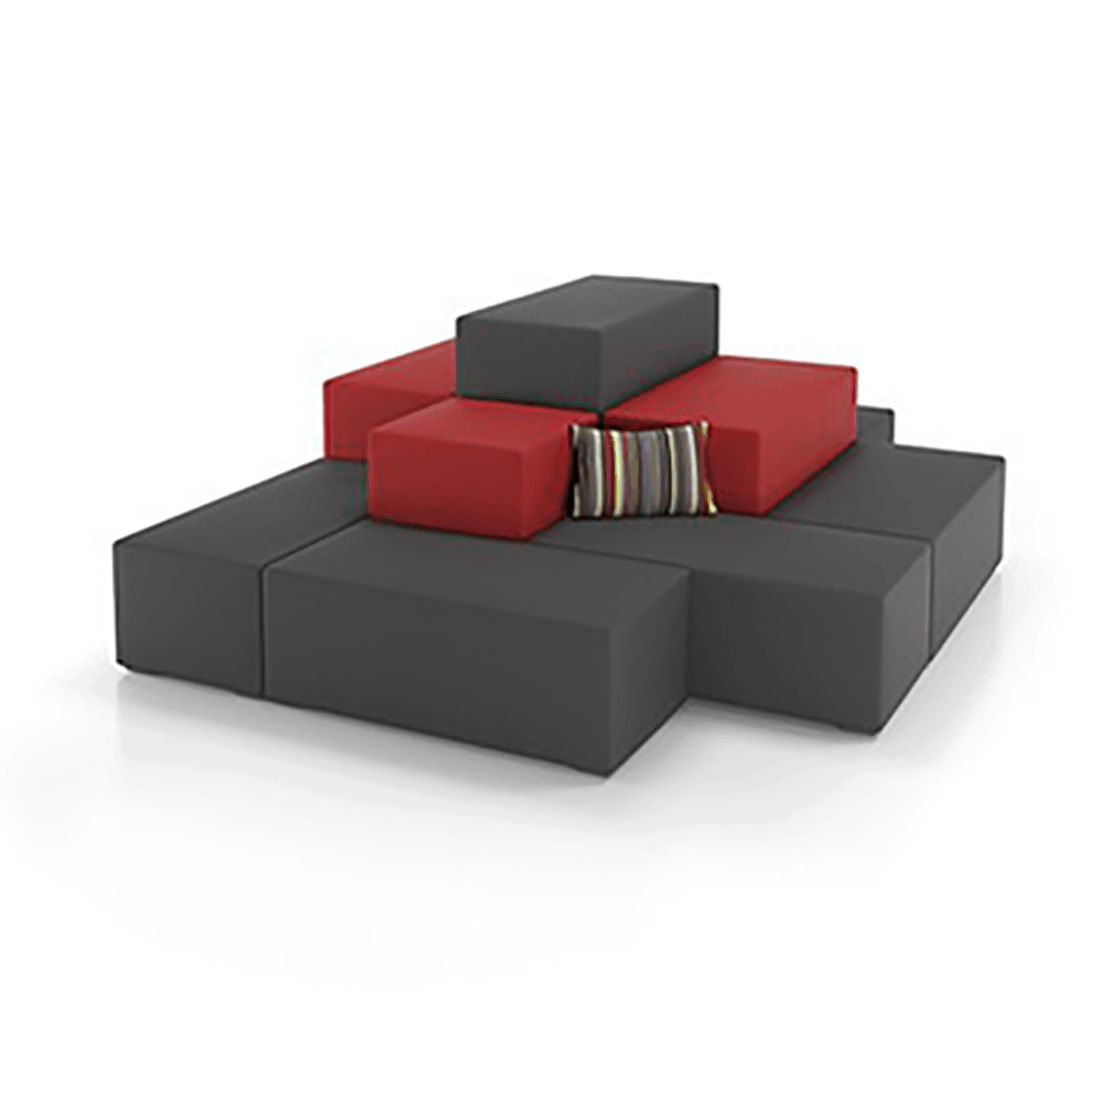 Artopex-Tiered Lounge Seating